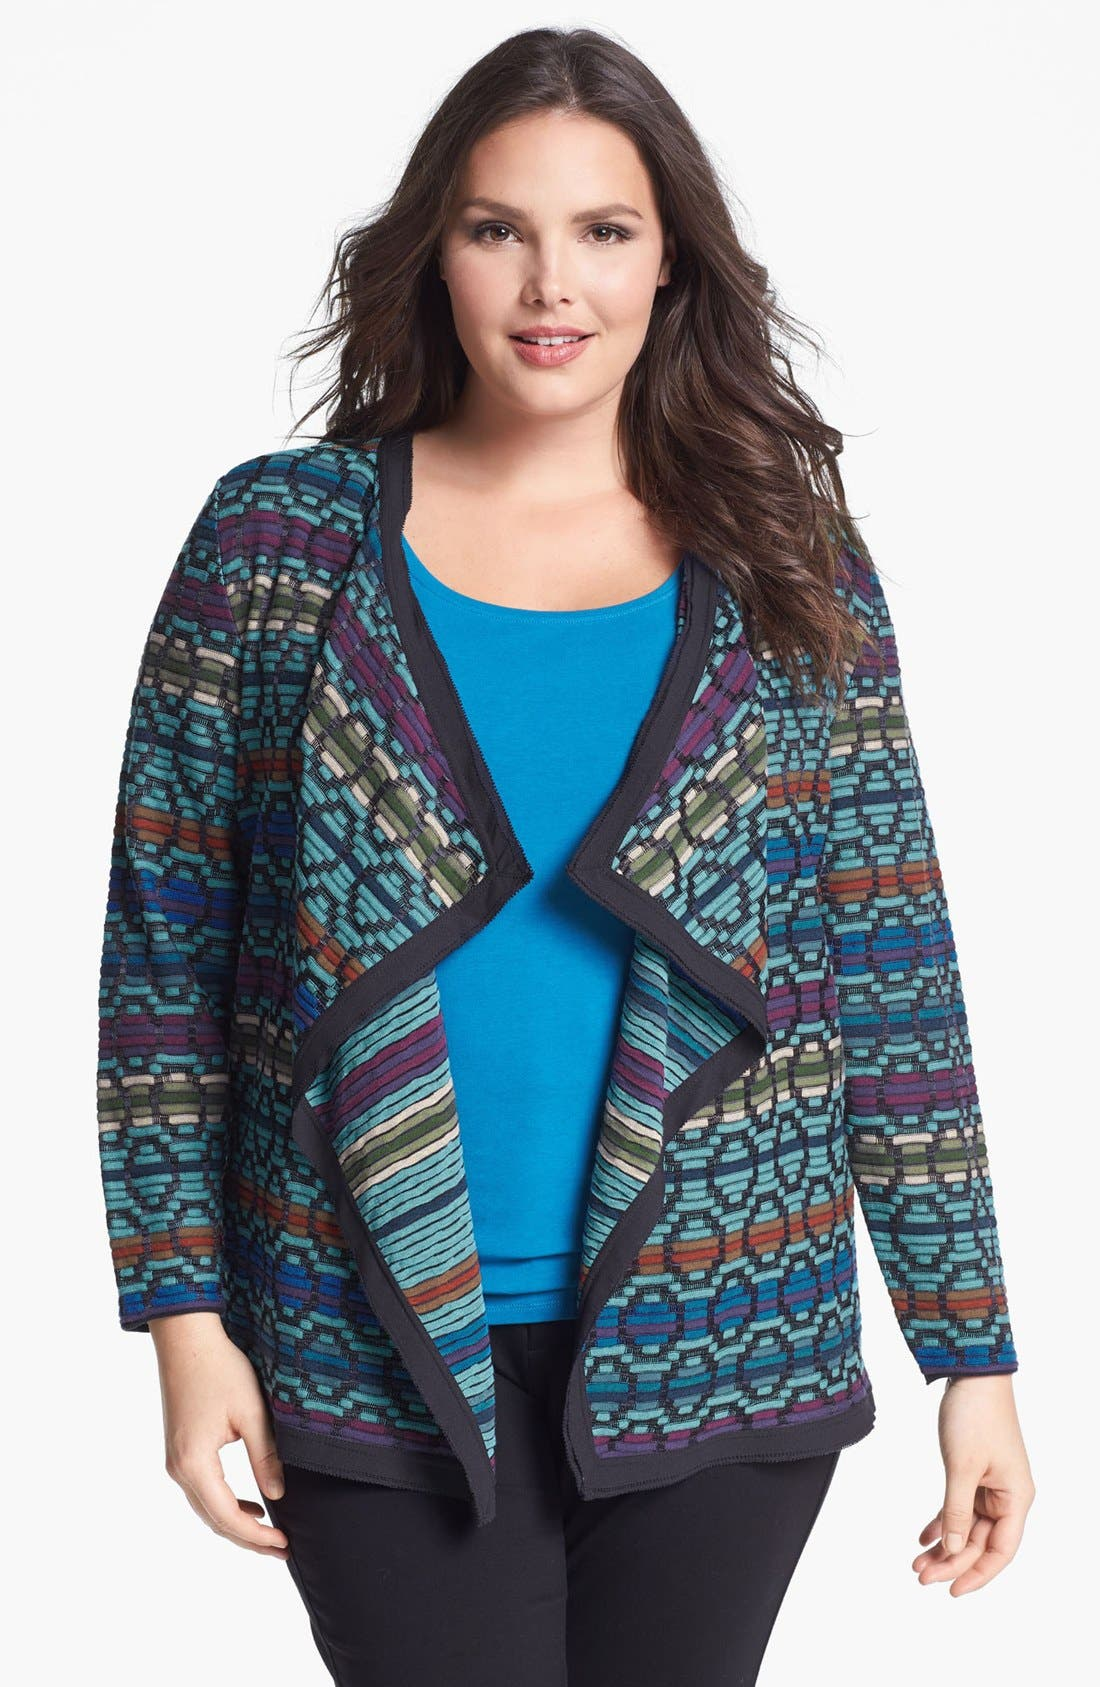 Alternate Image 1 Selected - NIC+ZOE 'Dots & Dashes' Drape Front Cardigan (Plus Size)